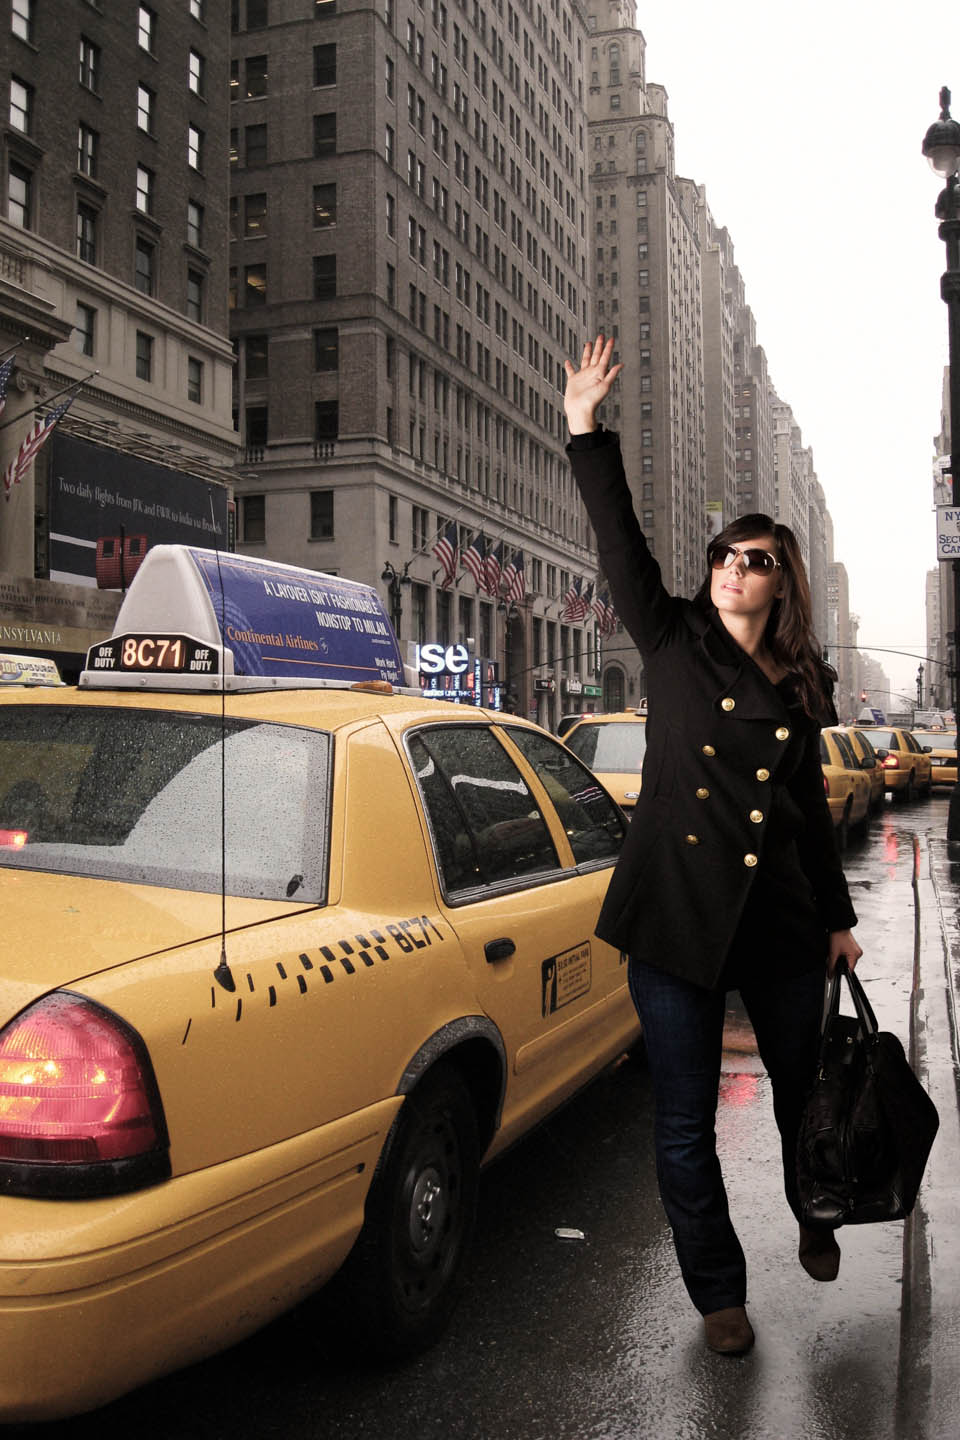 She was a fan of New York so I photoshopped her into New York and hailing a cab